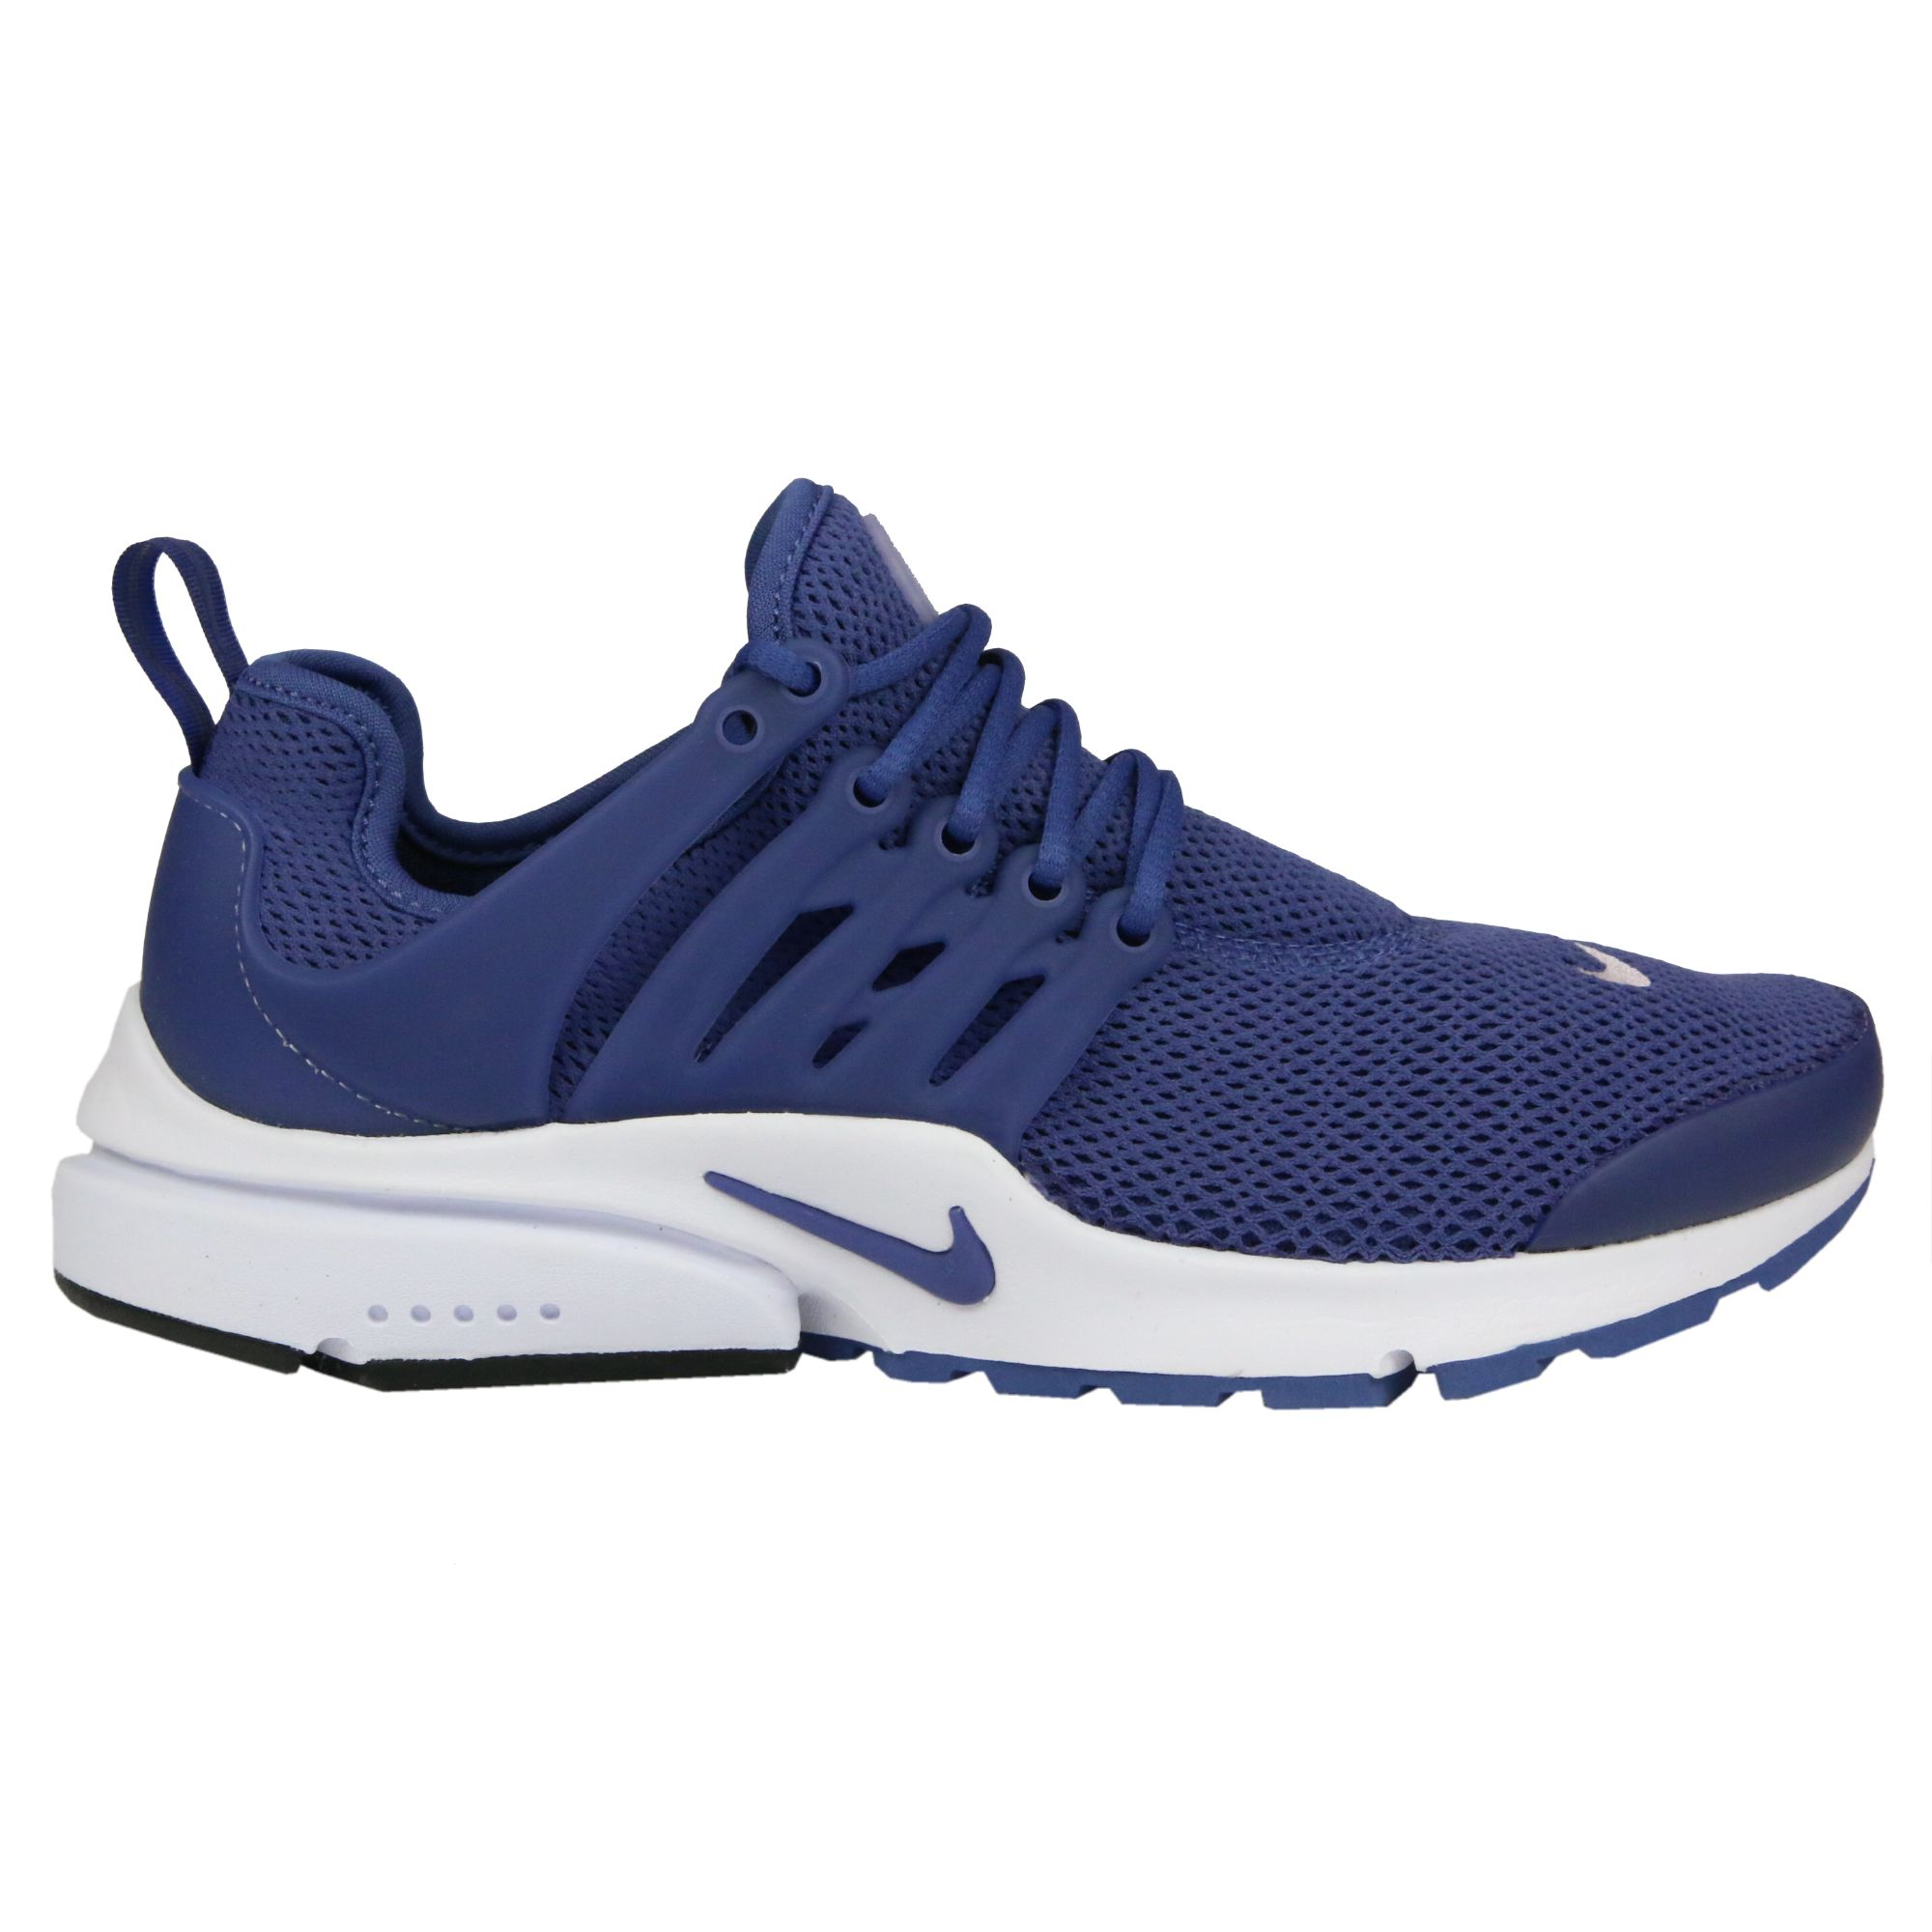 nike air presto schuhe turnschuhe sneaker damen ebay. Black Bedroom Furniture Sets. Home Design Ideas